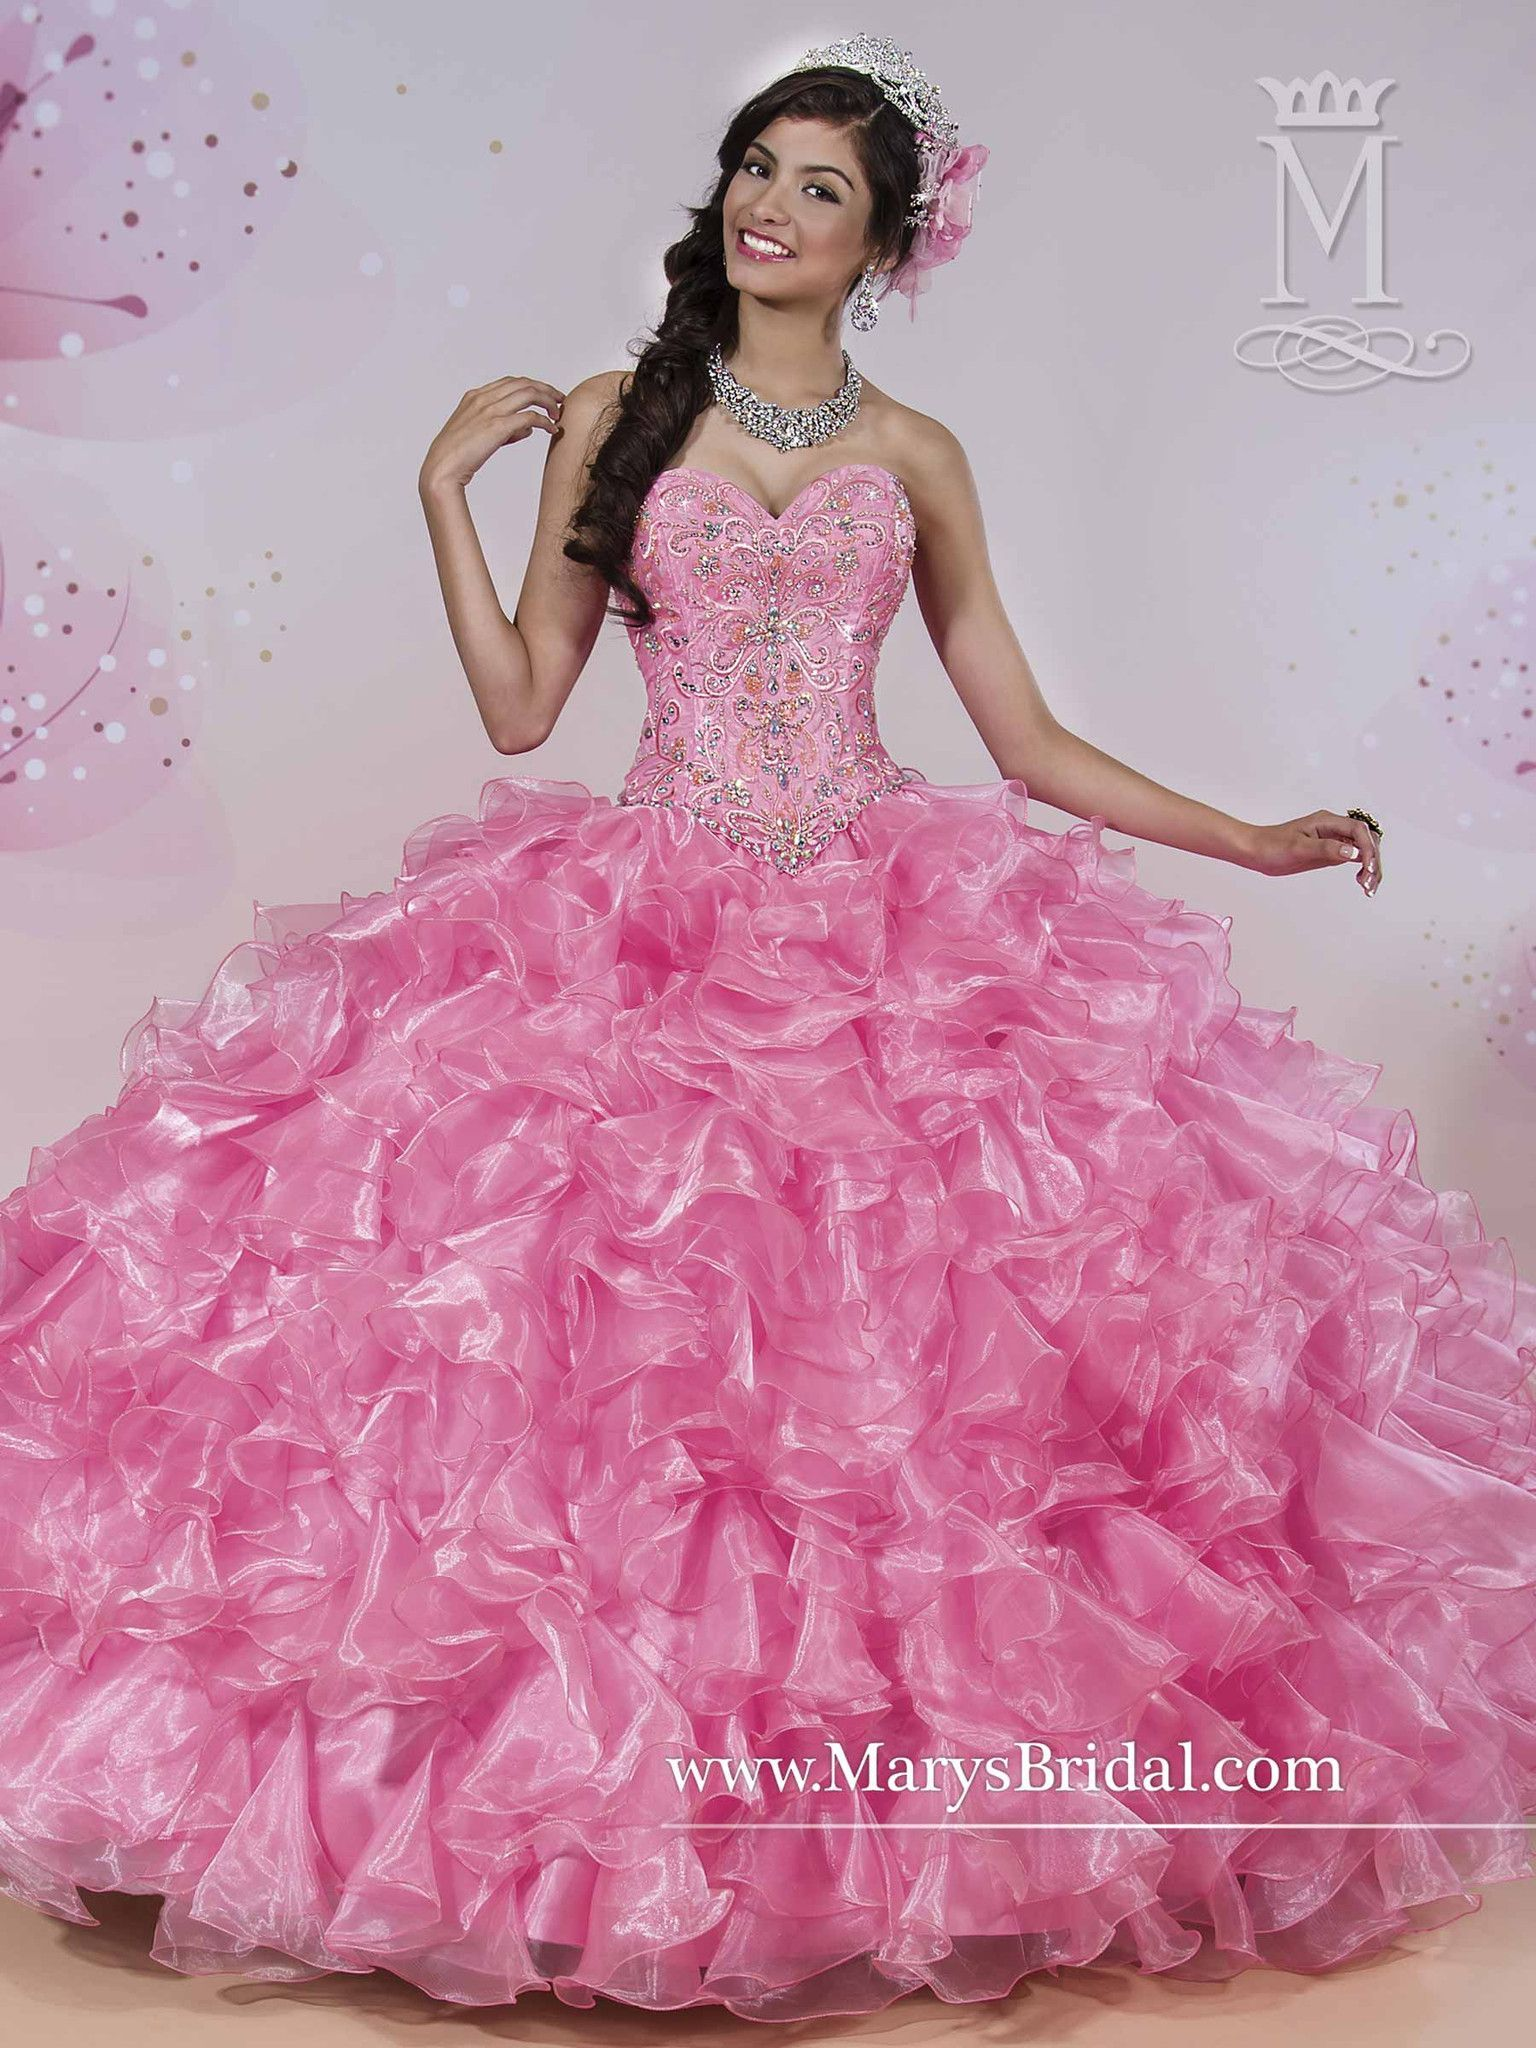 Mary\'s Bridal Princess Collection Quinceanera Dress Style 4Q416 | my ...